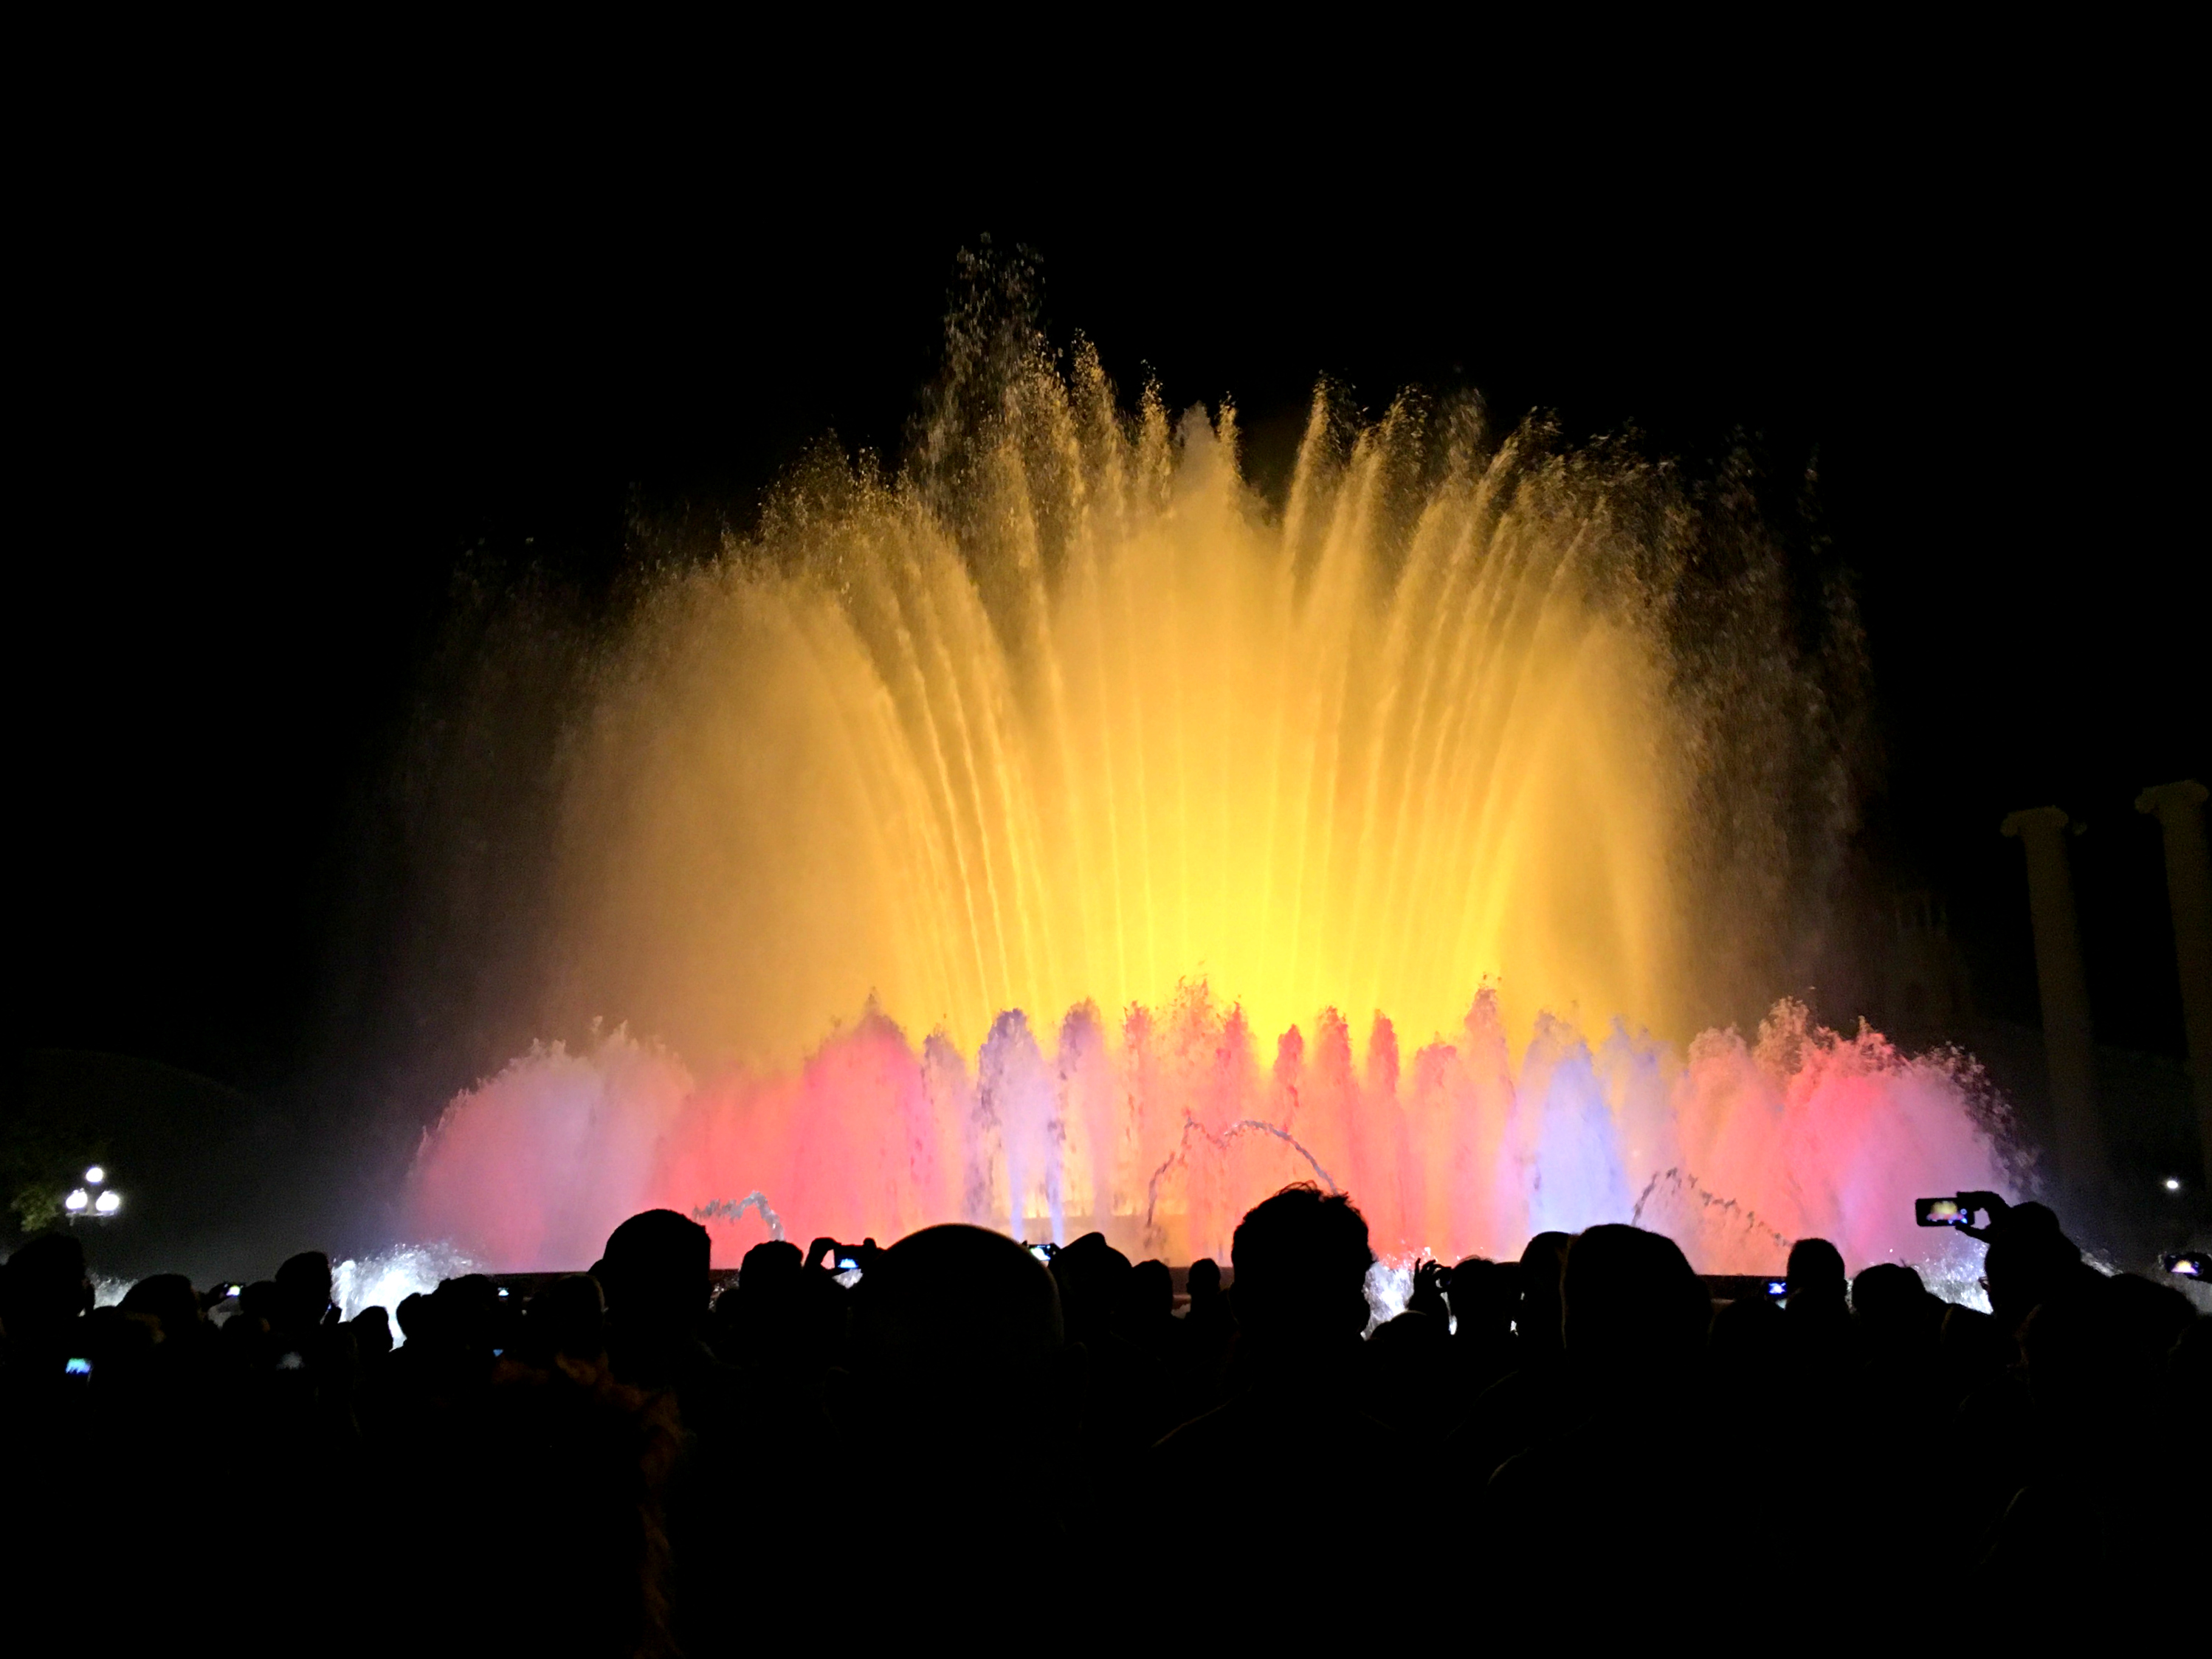 Barcelona Magic Fountain 2